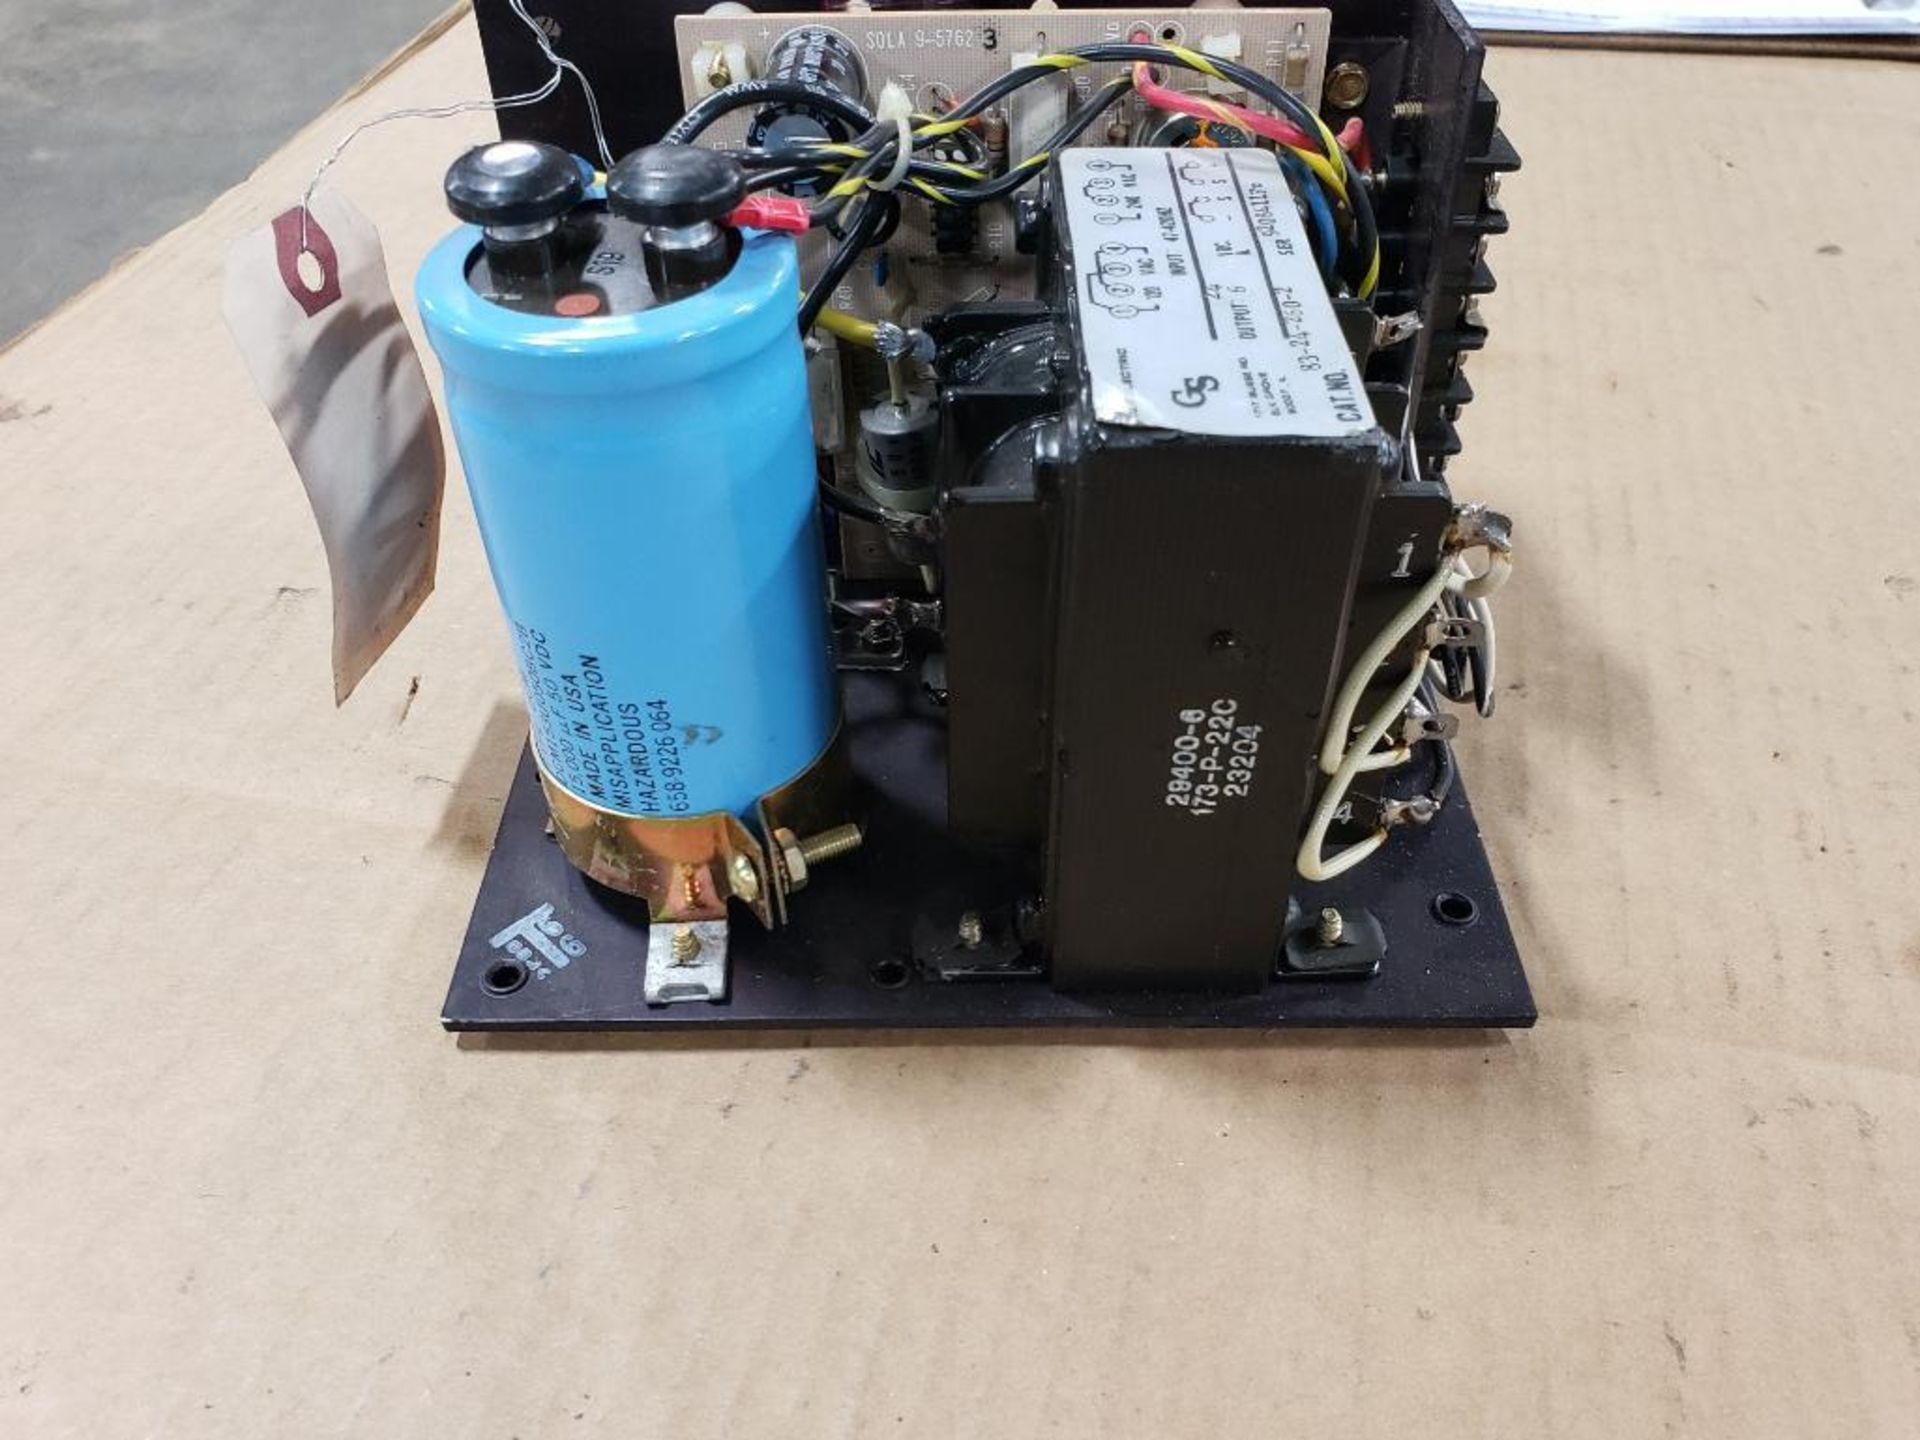 Sola Electric 83-24-260-2 Power supply. - Image 3 of 4